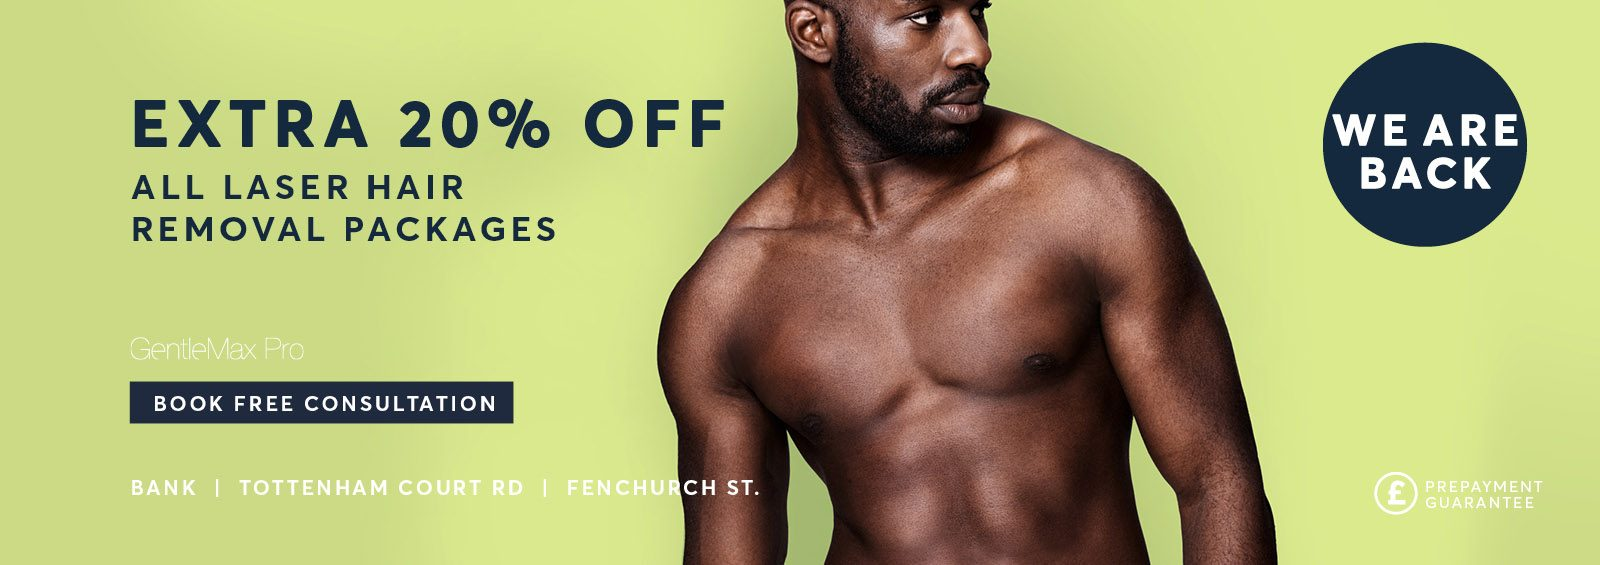 laser hair removal for men extra 20% discount